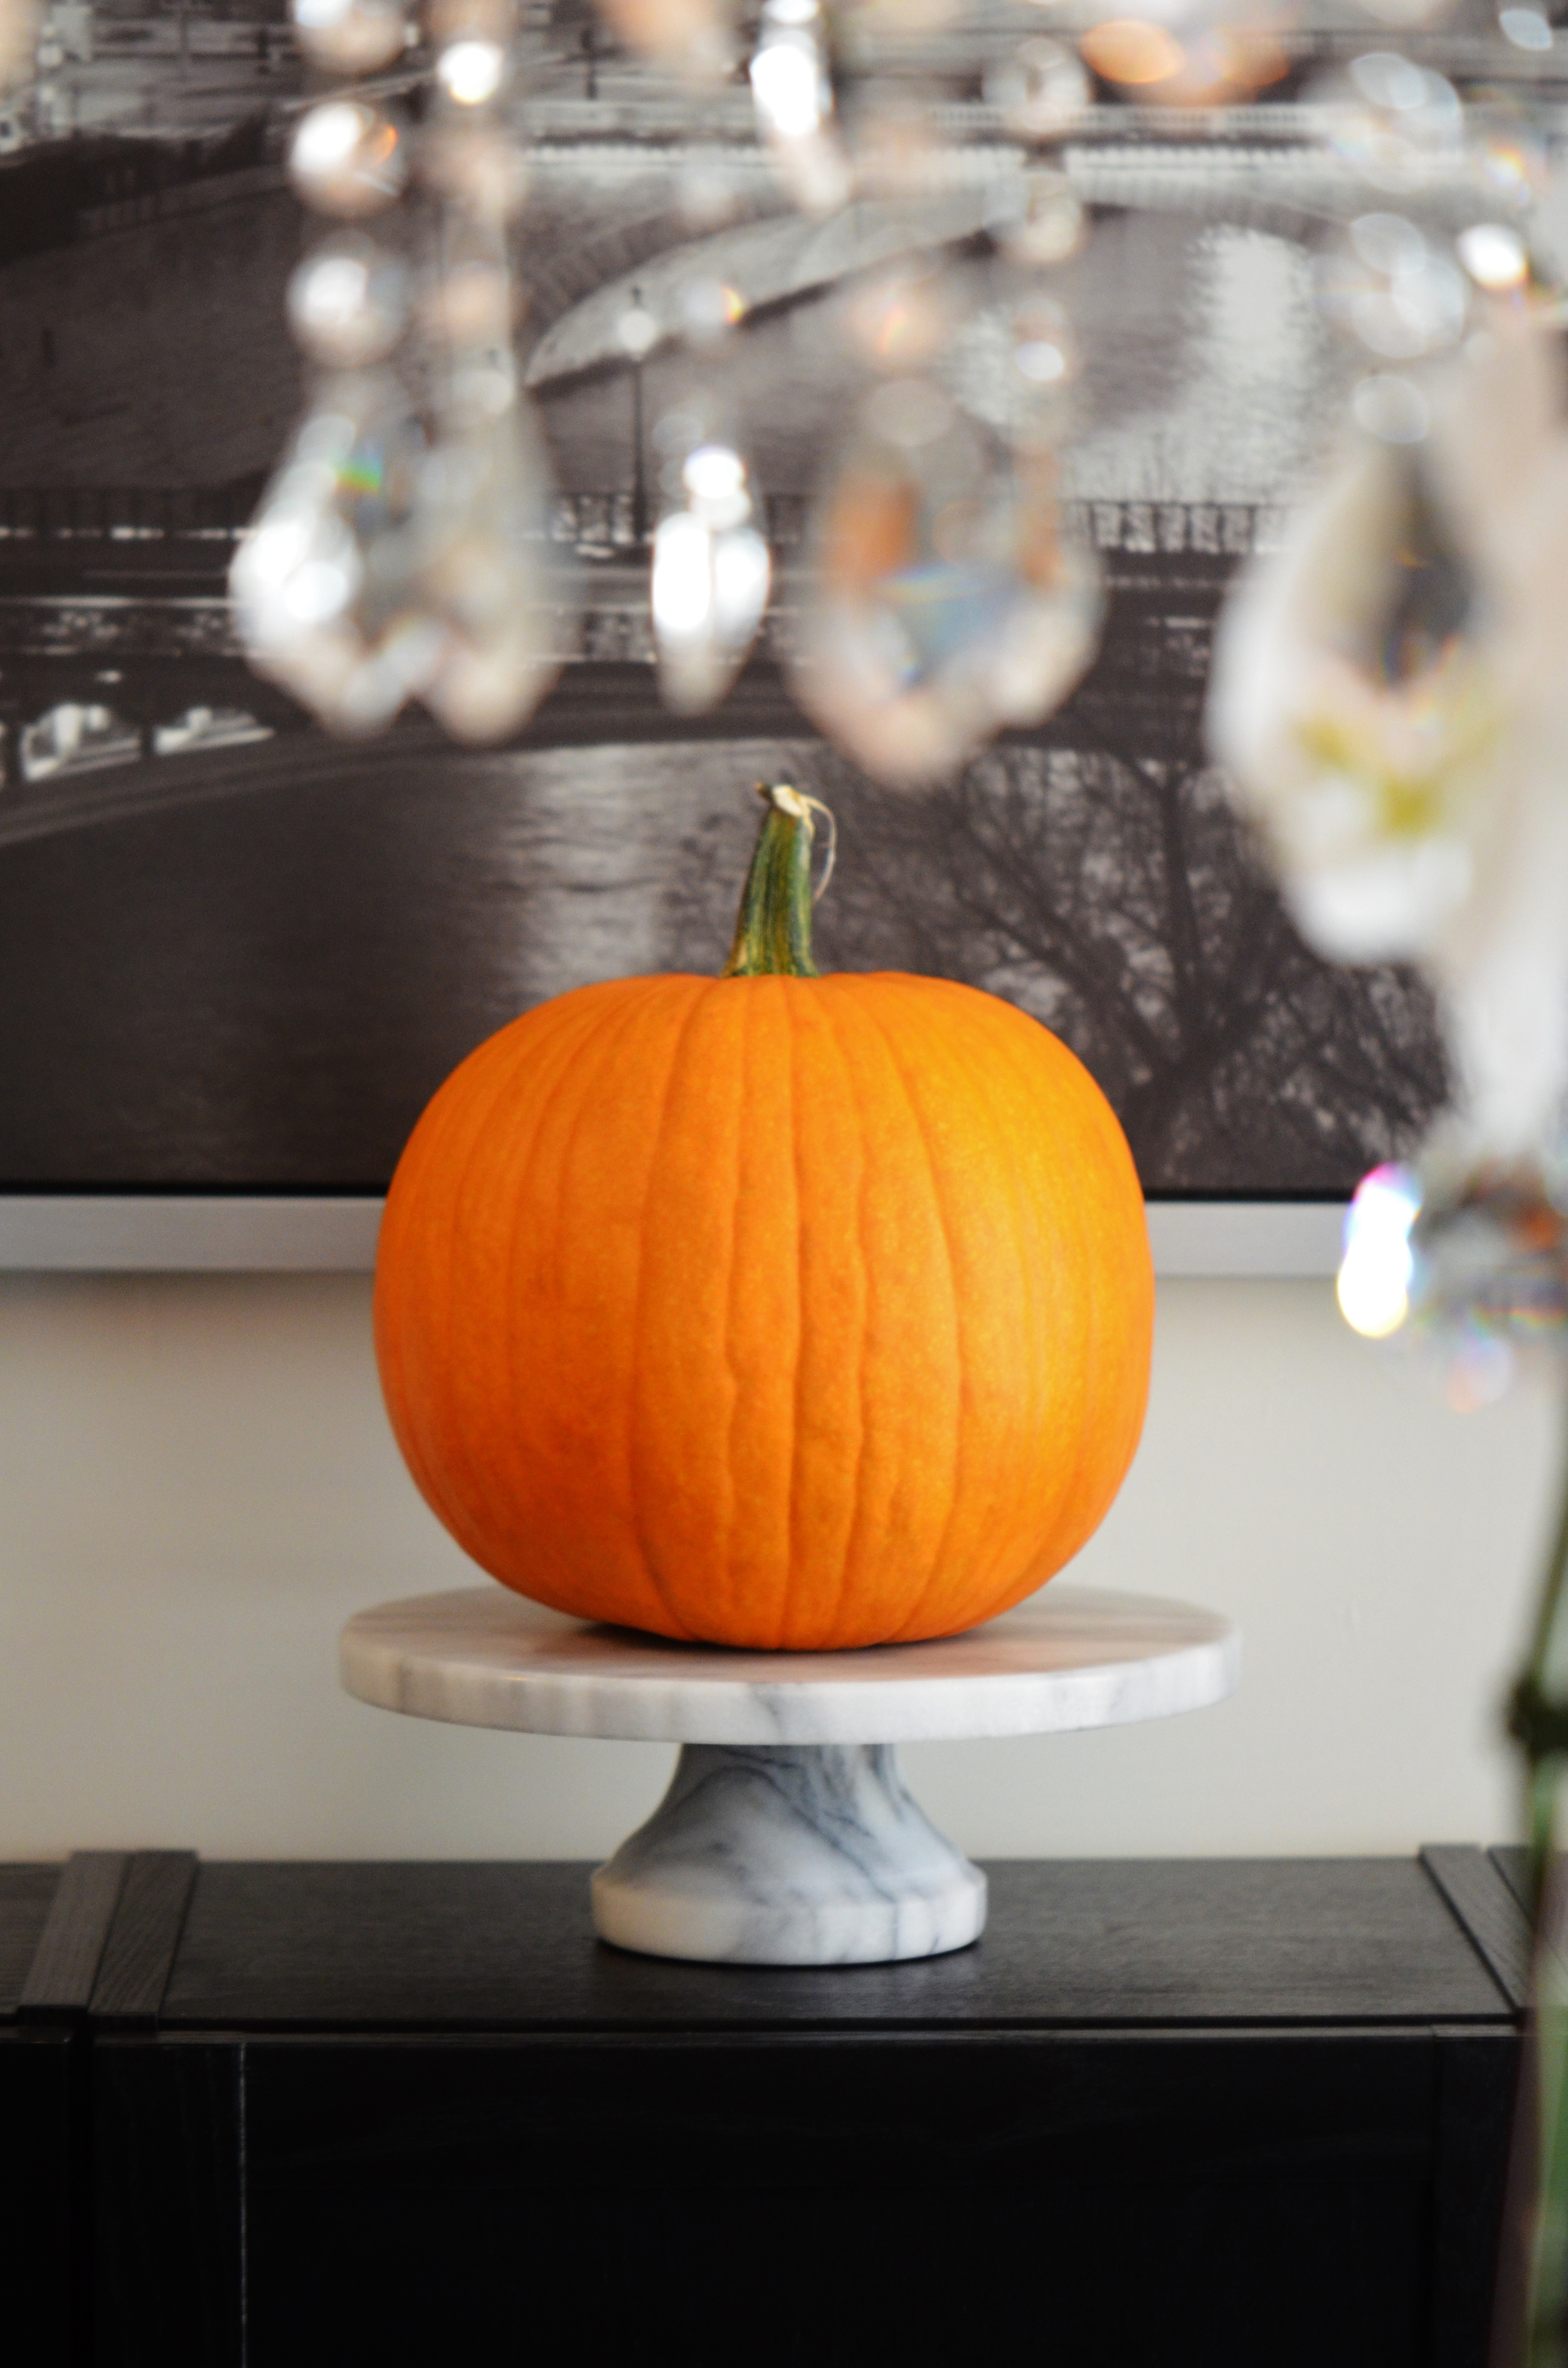 Make a bold and refined statement with a single pumpkin on a pedestal.  This look adds sophistication to the simplest of elements and looks fabulous on a sideboard, coffee table, dinning table, or entry table.  If you have multiple pedestals in varying sizes, create an entire display using different sized pumpkins, gourds, and candles.